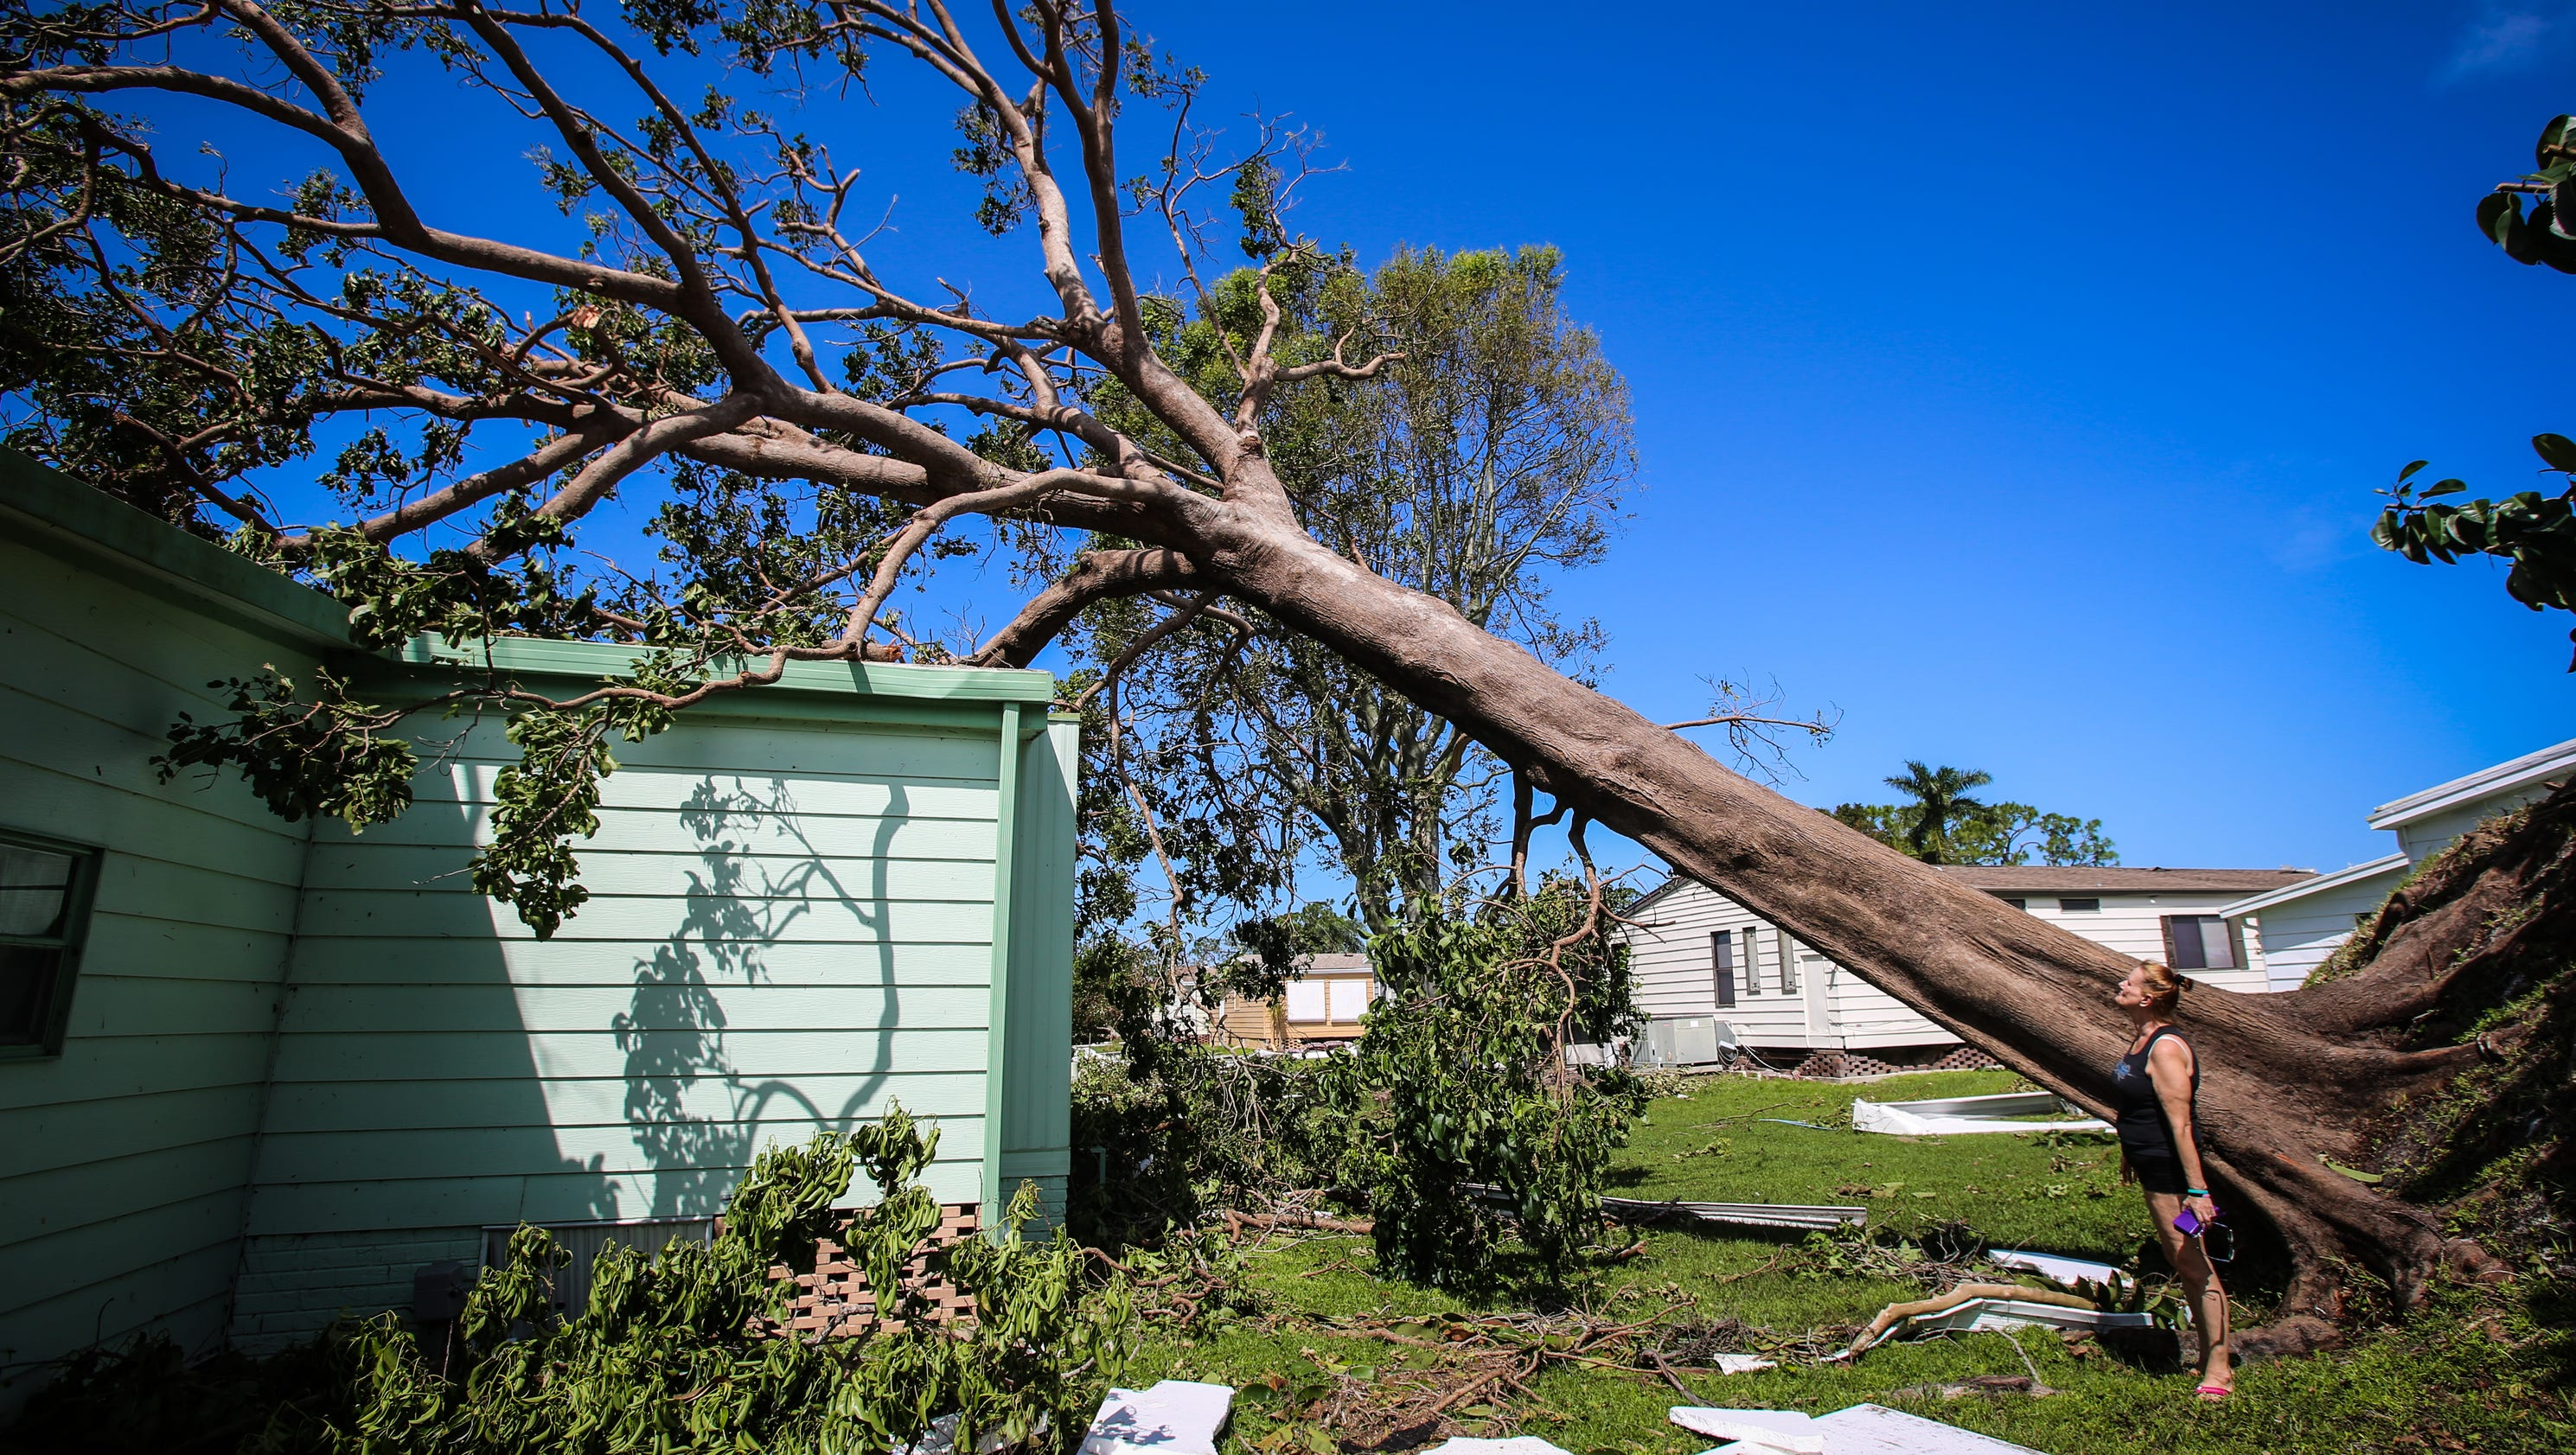 Hurricane Irma Mobile Home Parks Bear Brunt Of Structural Damage In Naples